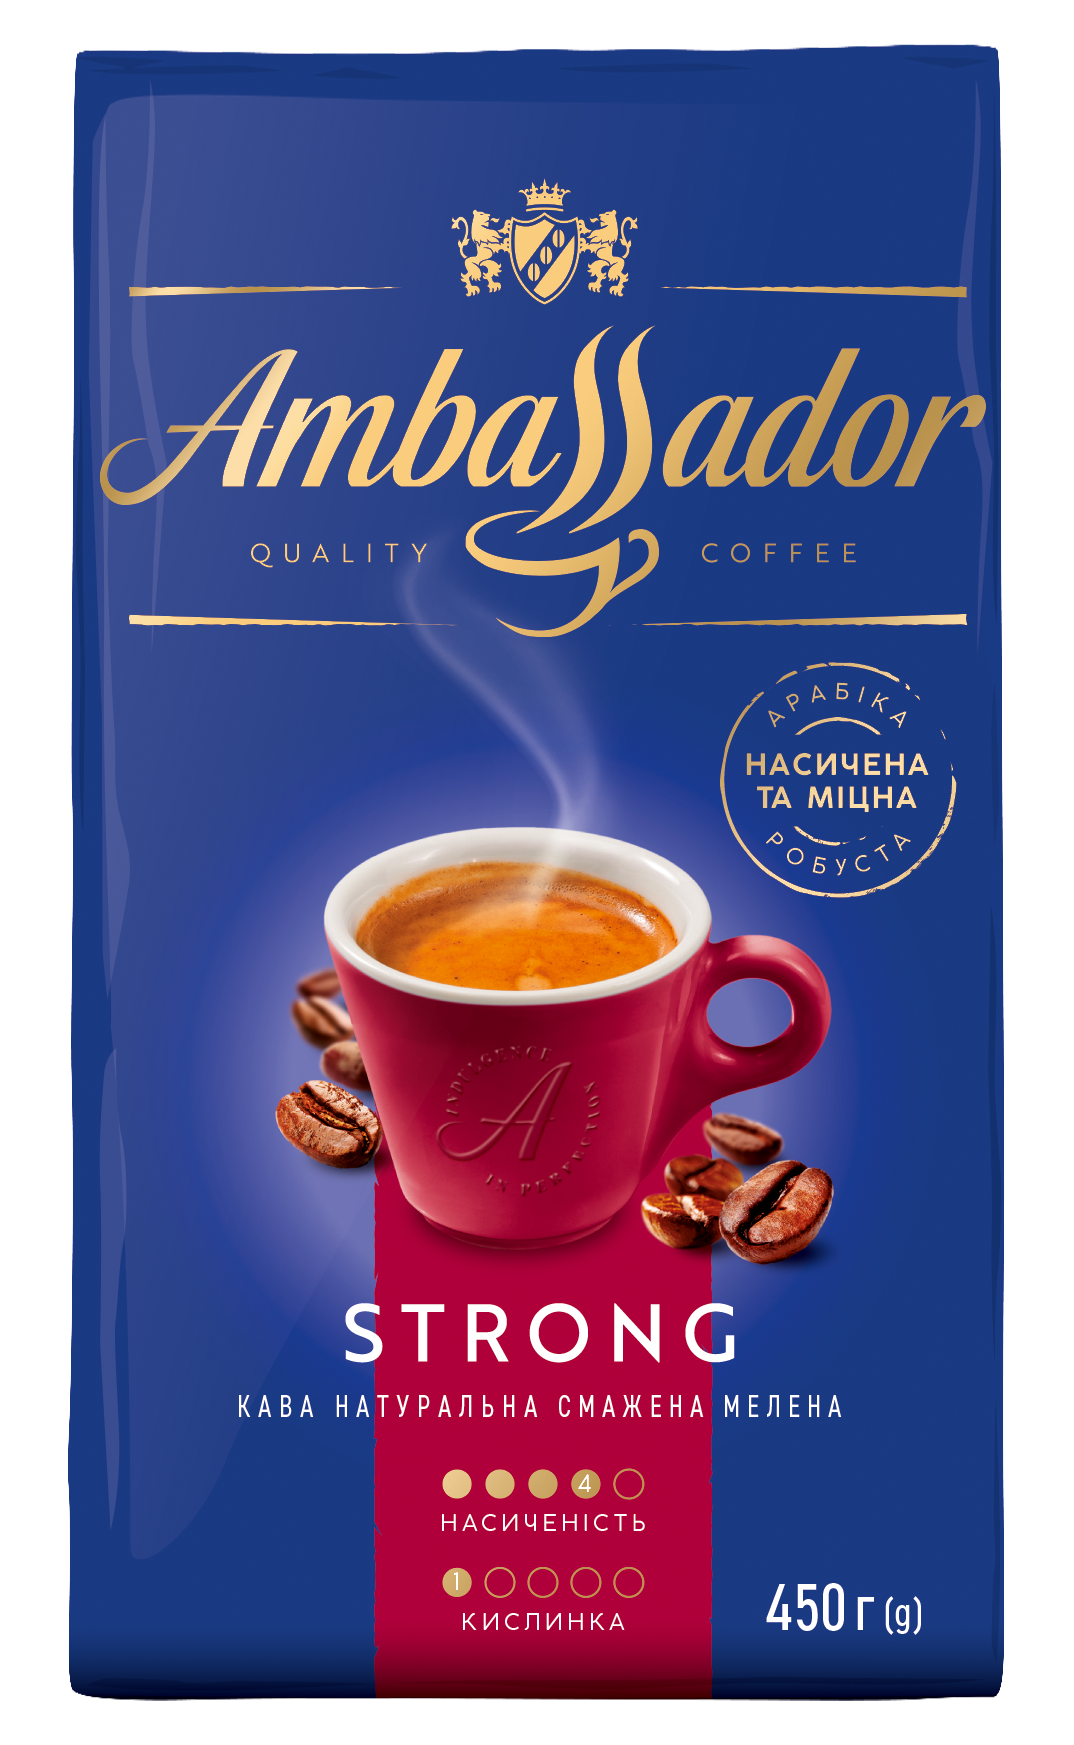 Ambassador Strong 450g ground